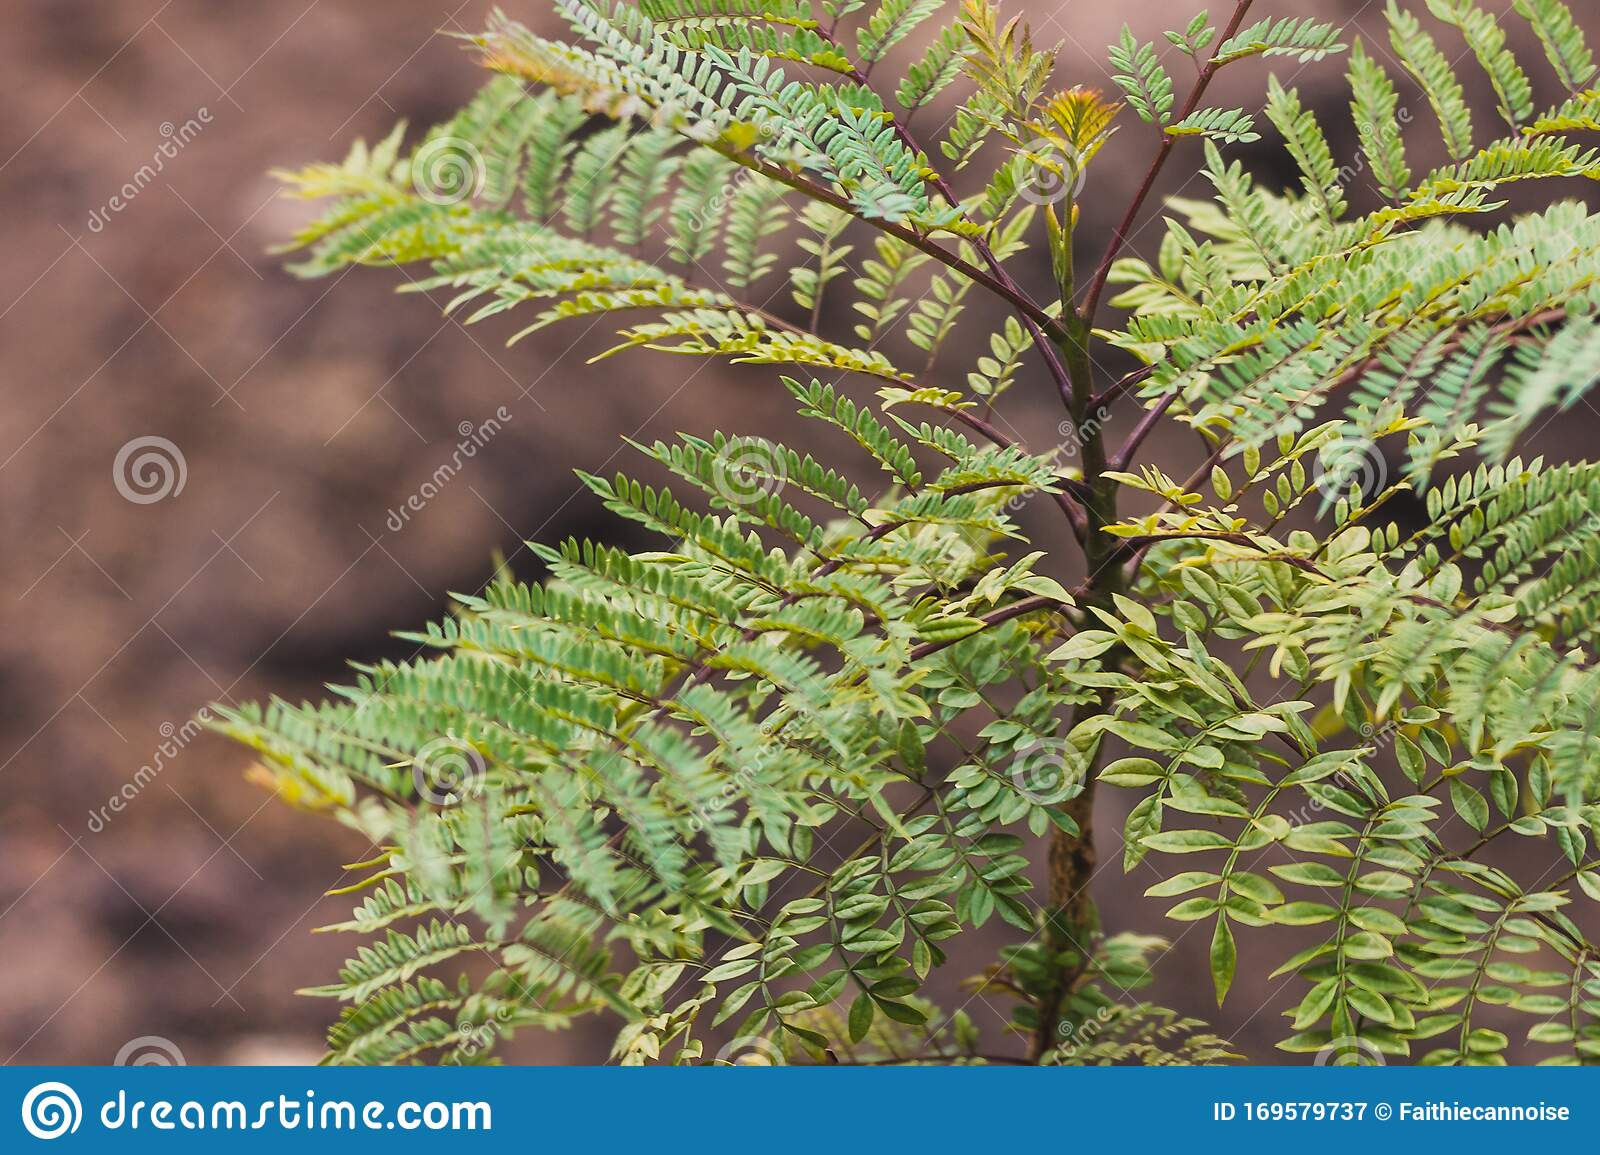 Small Jacaranda Tree Branch With Tiny Leaves Stock Image Image Of Flora Vibrant